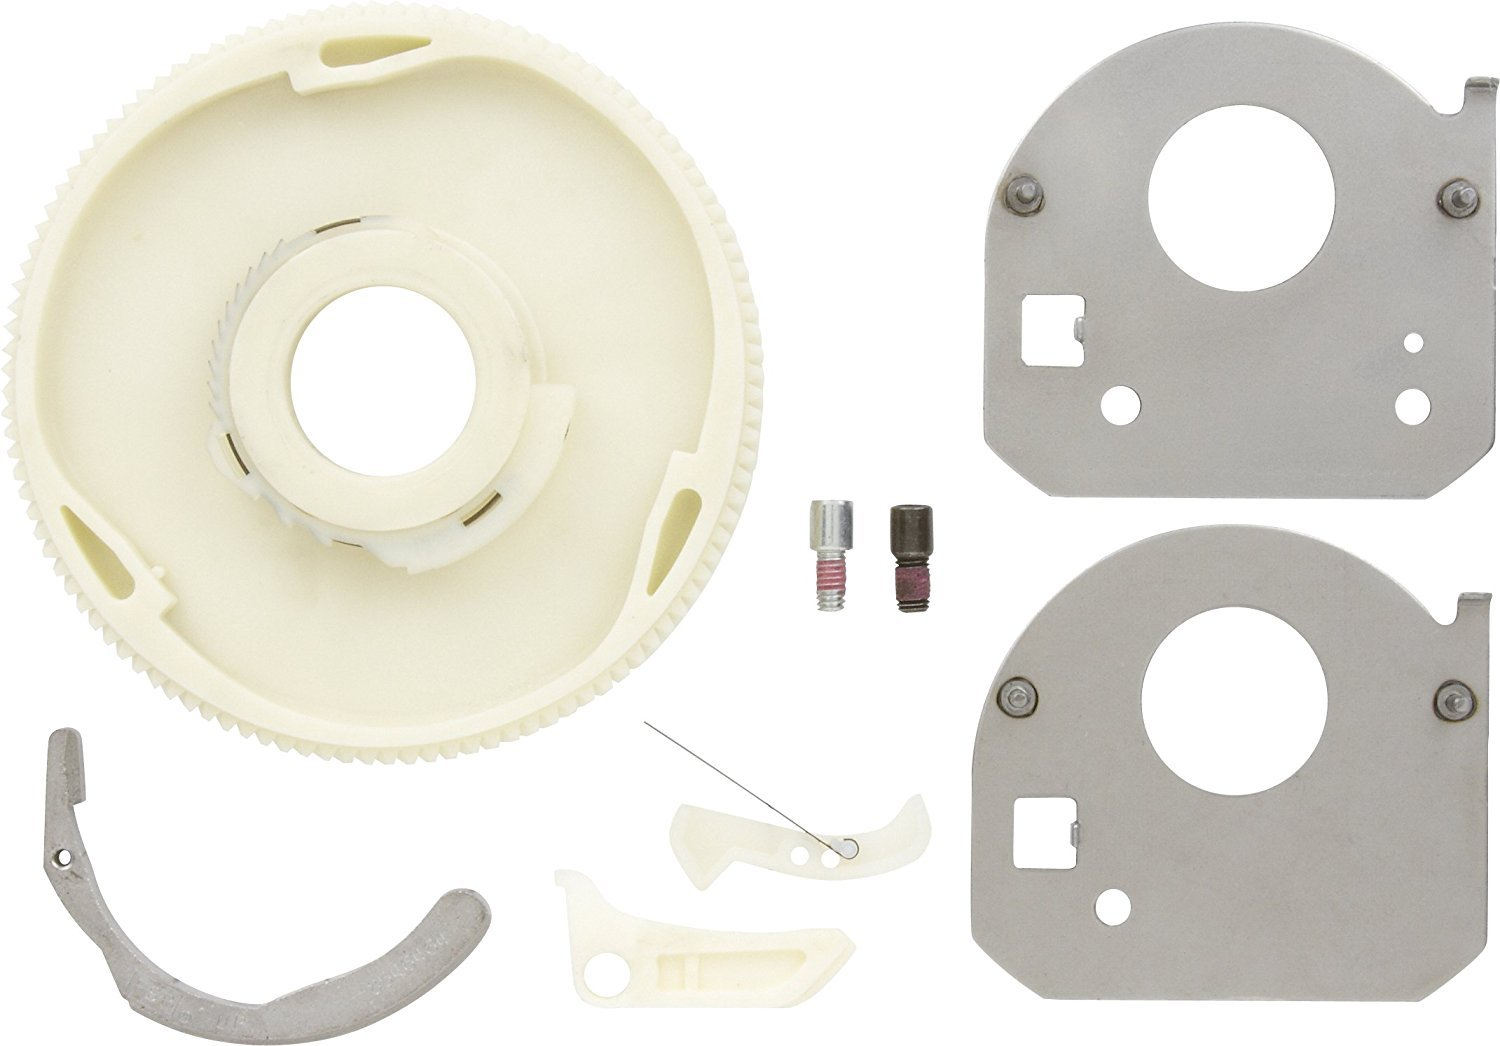 Kenmore / Sears 11026442502 Neutral Drain Kit Replacement